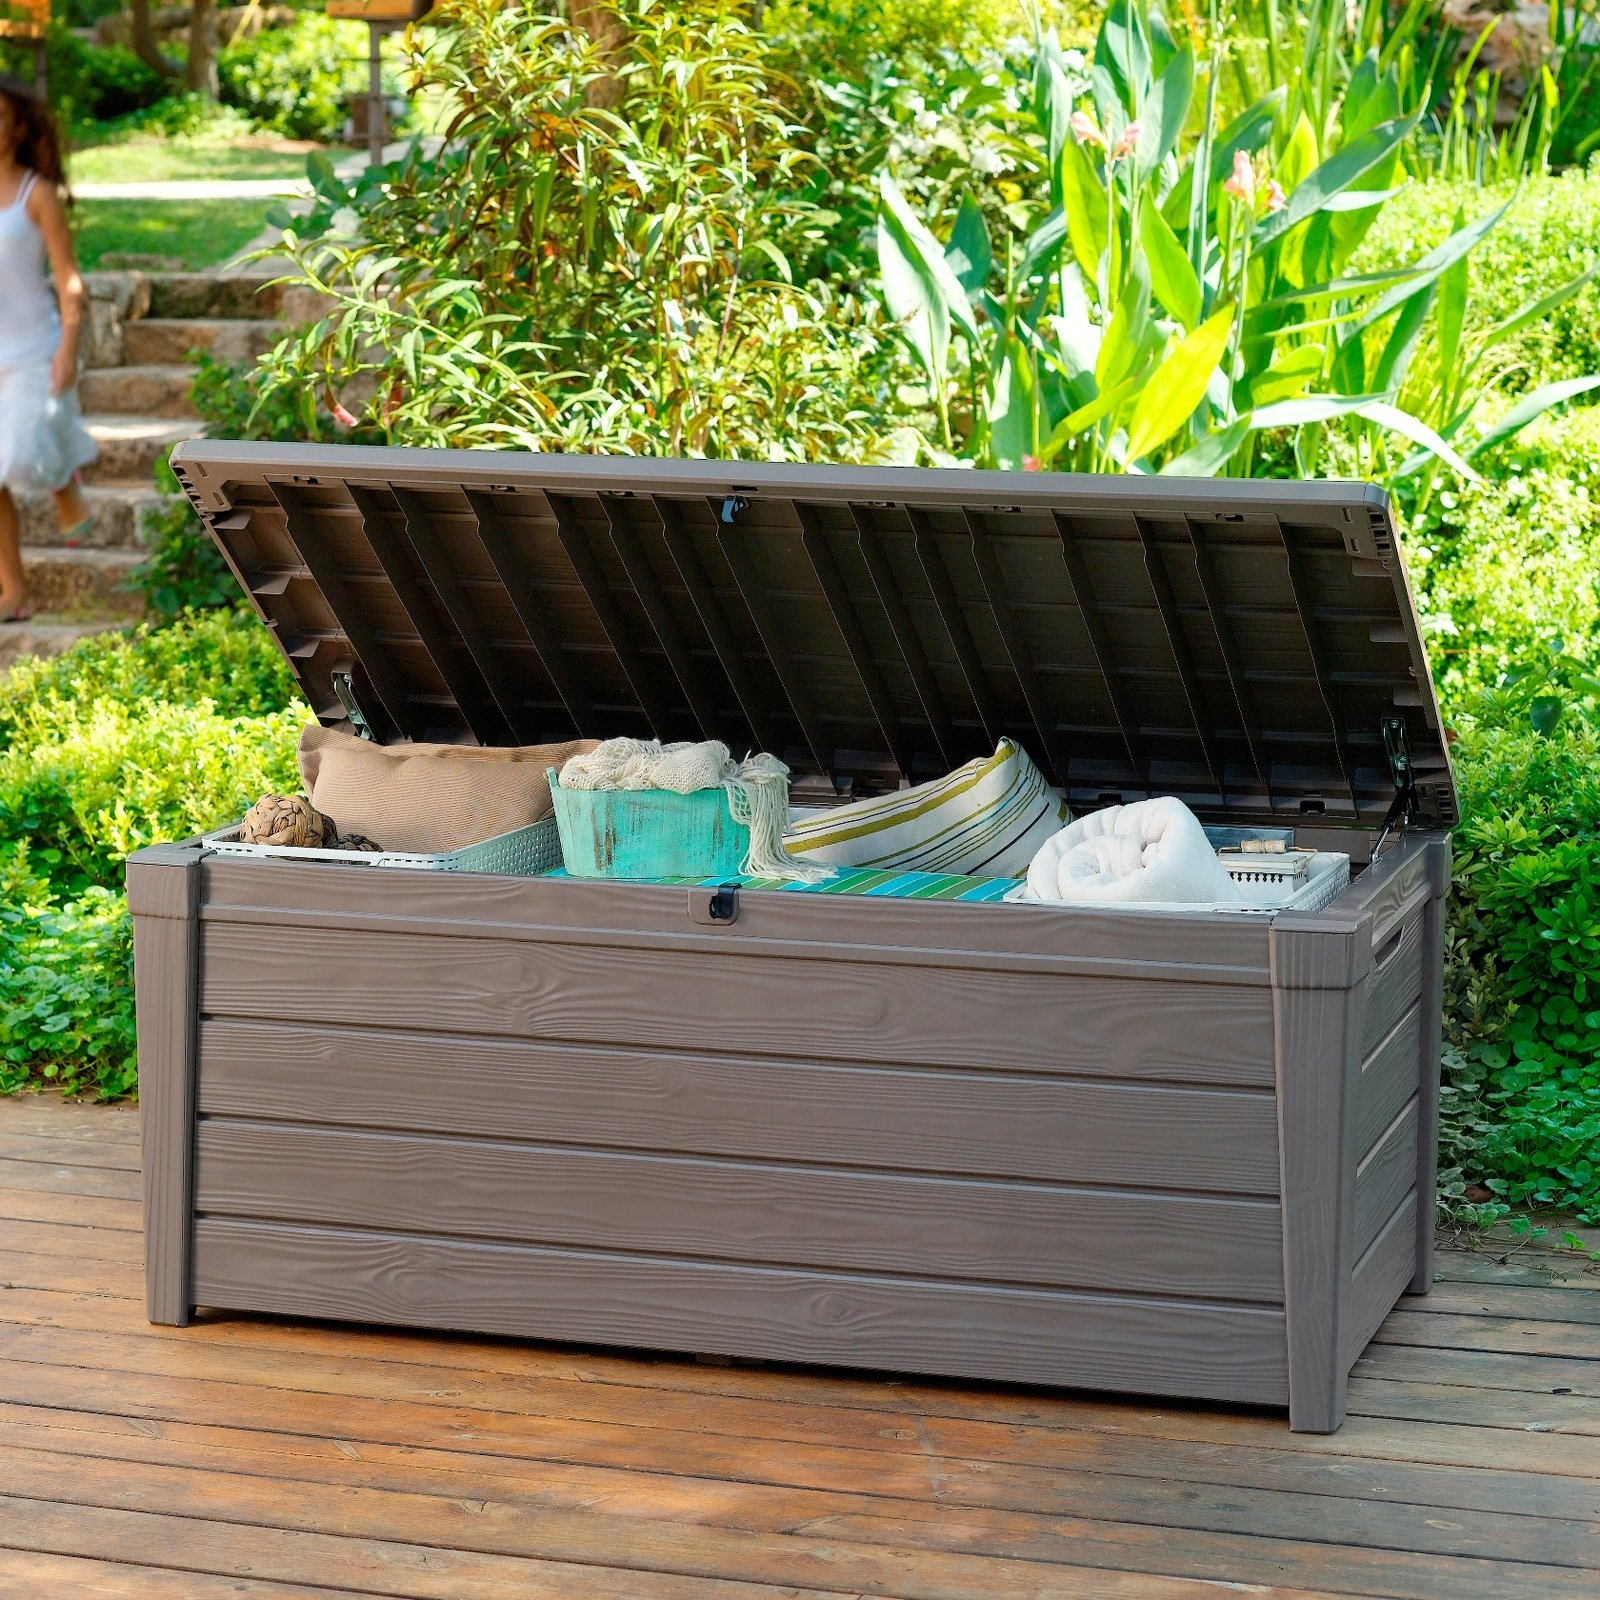 Storage Easy To Move Grey Deck Storage Box With Handles And Regarding Waterproof Outdoor Cushion Storage Bo Waterproof Outdoor Cushion Storage Box Idea